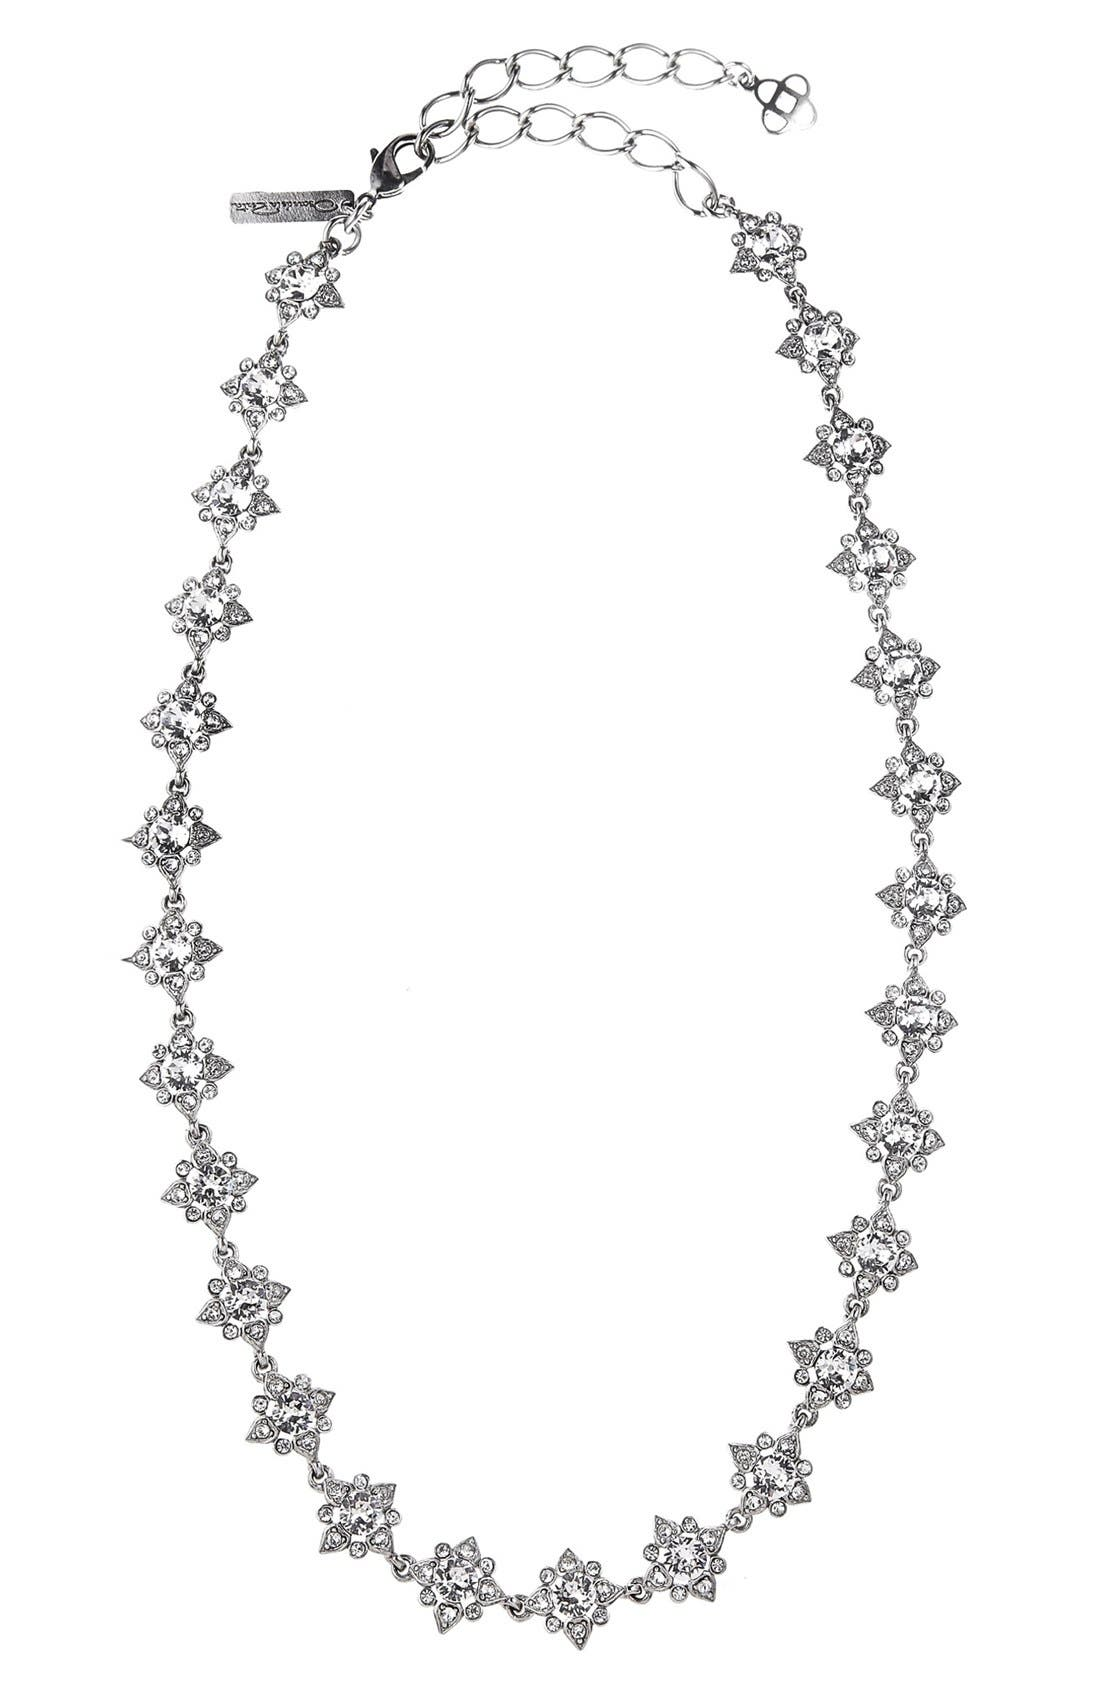 Main Image - Oscar de la Renta 'Delicate Star' Swarovski Crystal Collar Necklace